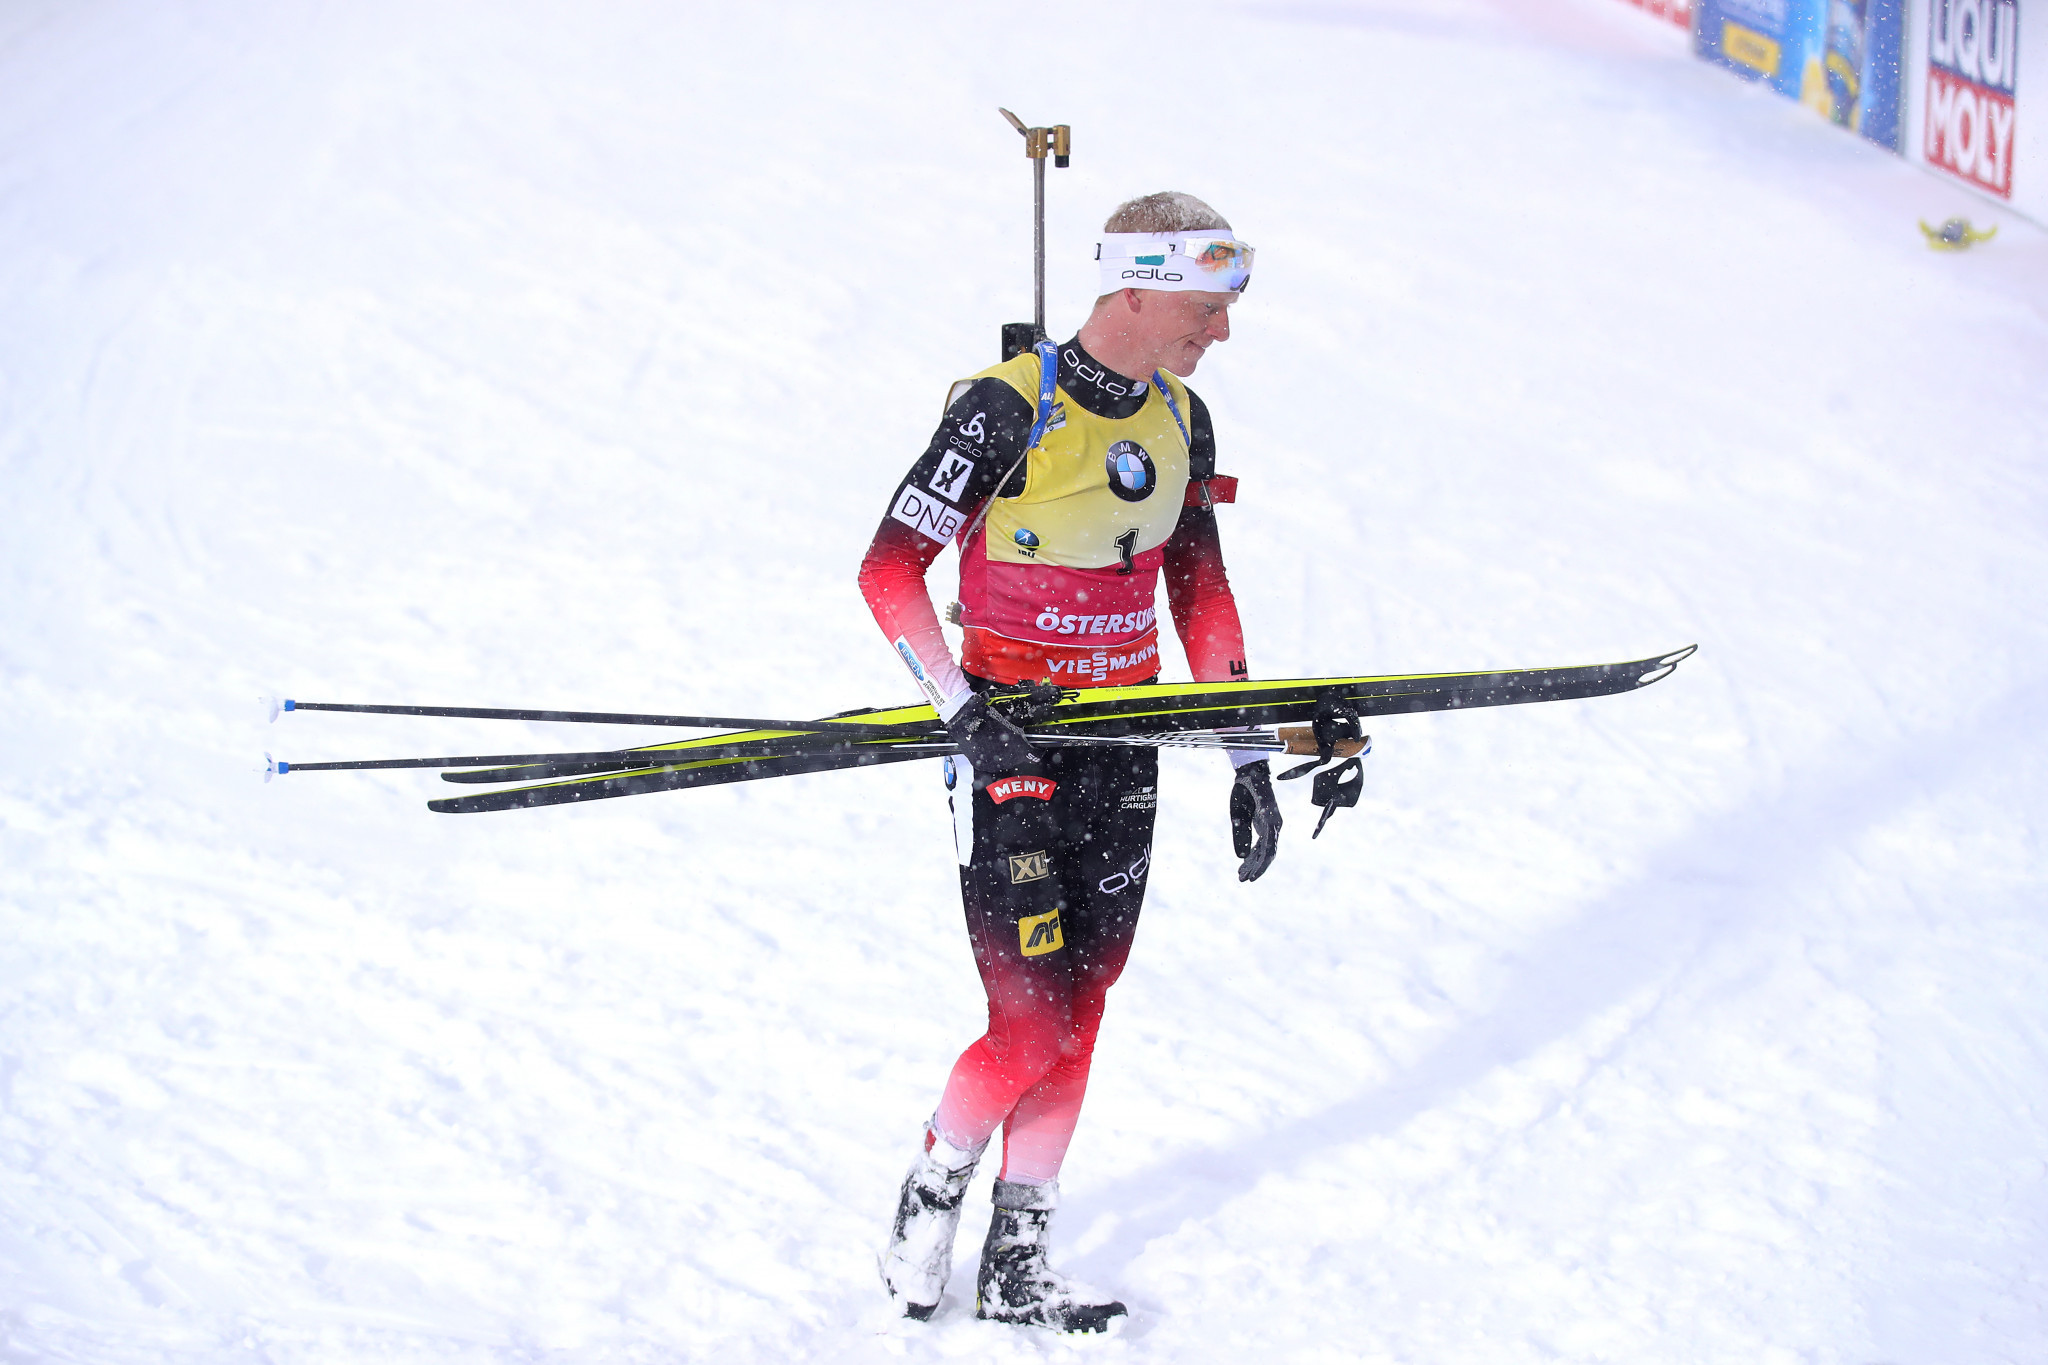 Norwegian star Johannes Thingnes Bø secured a record-equalling 14th victory of the season ©Getty Images